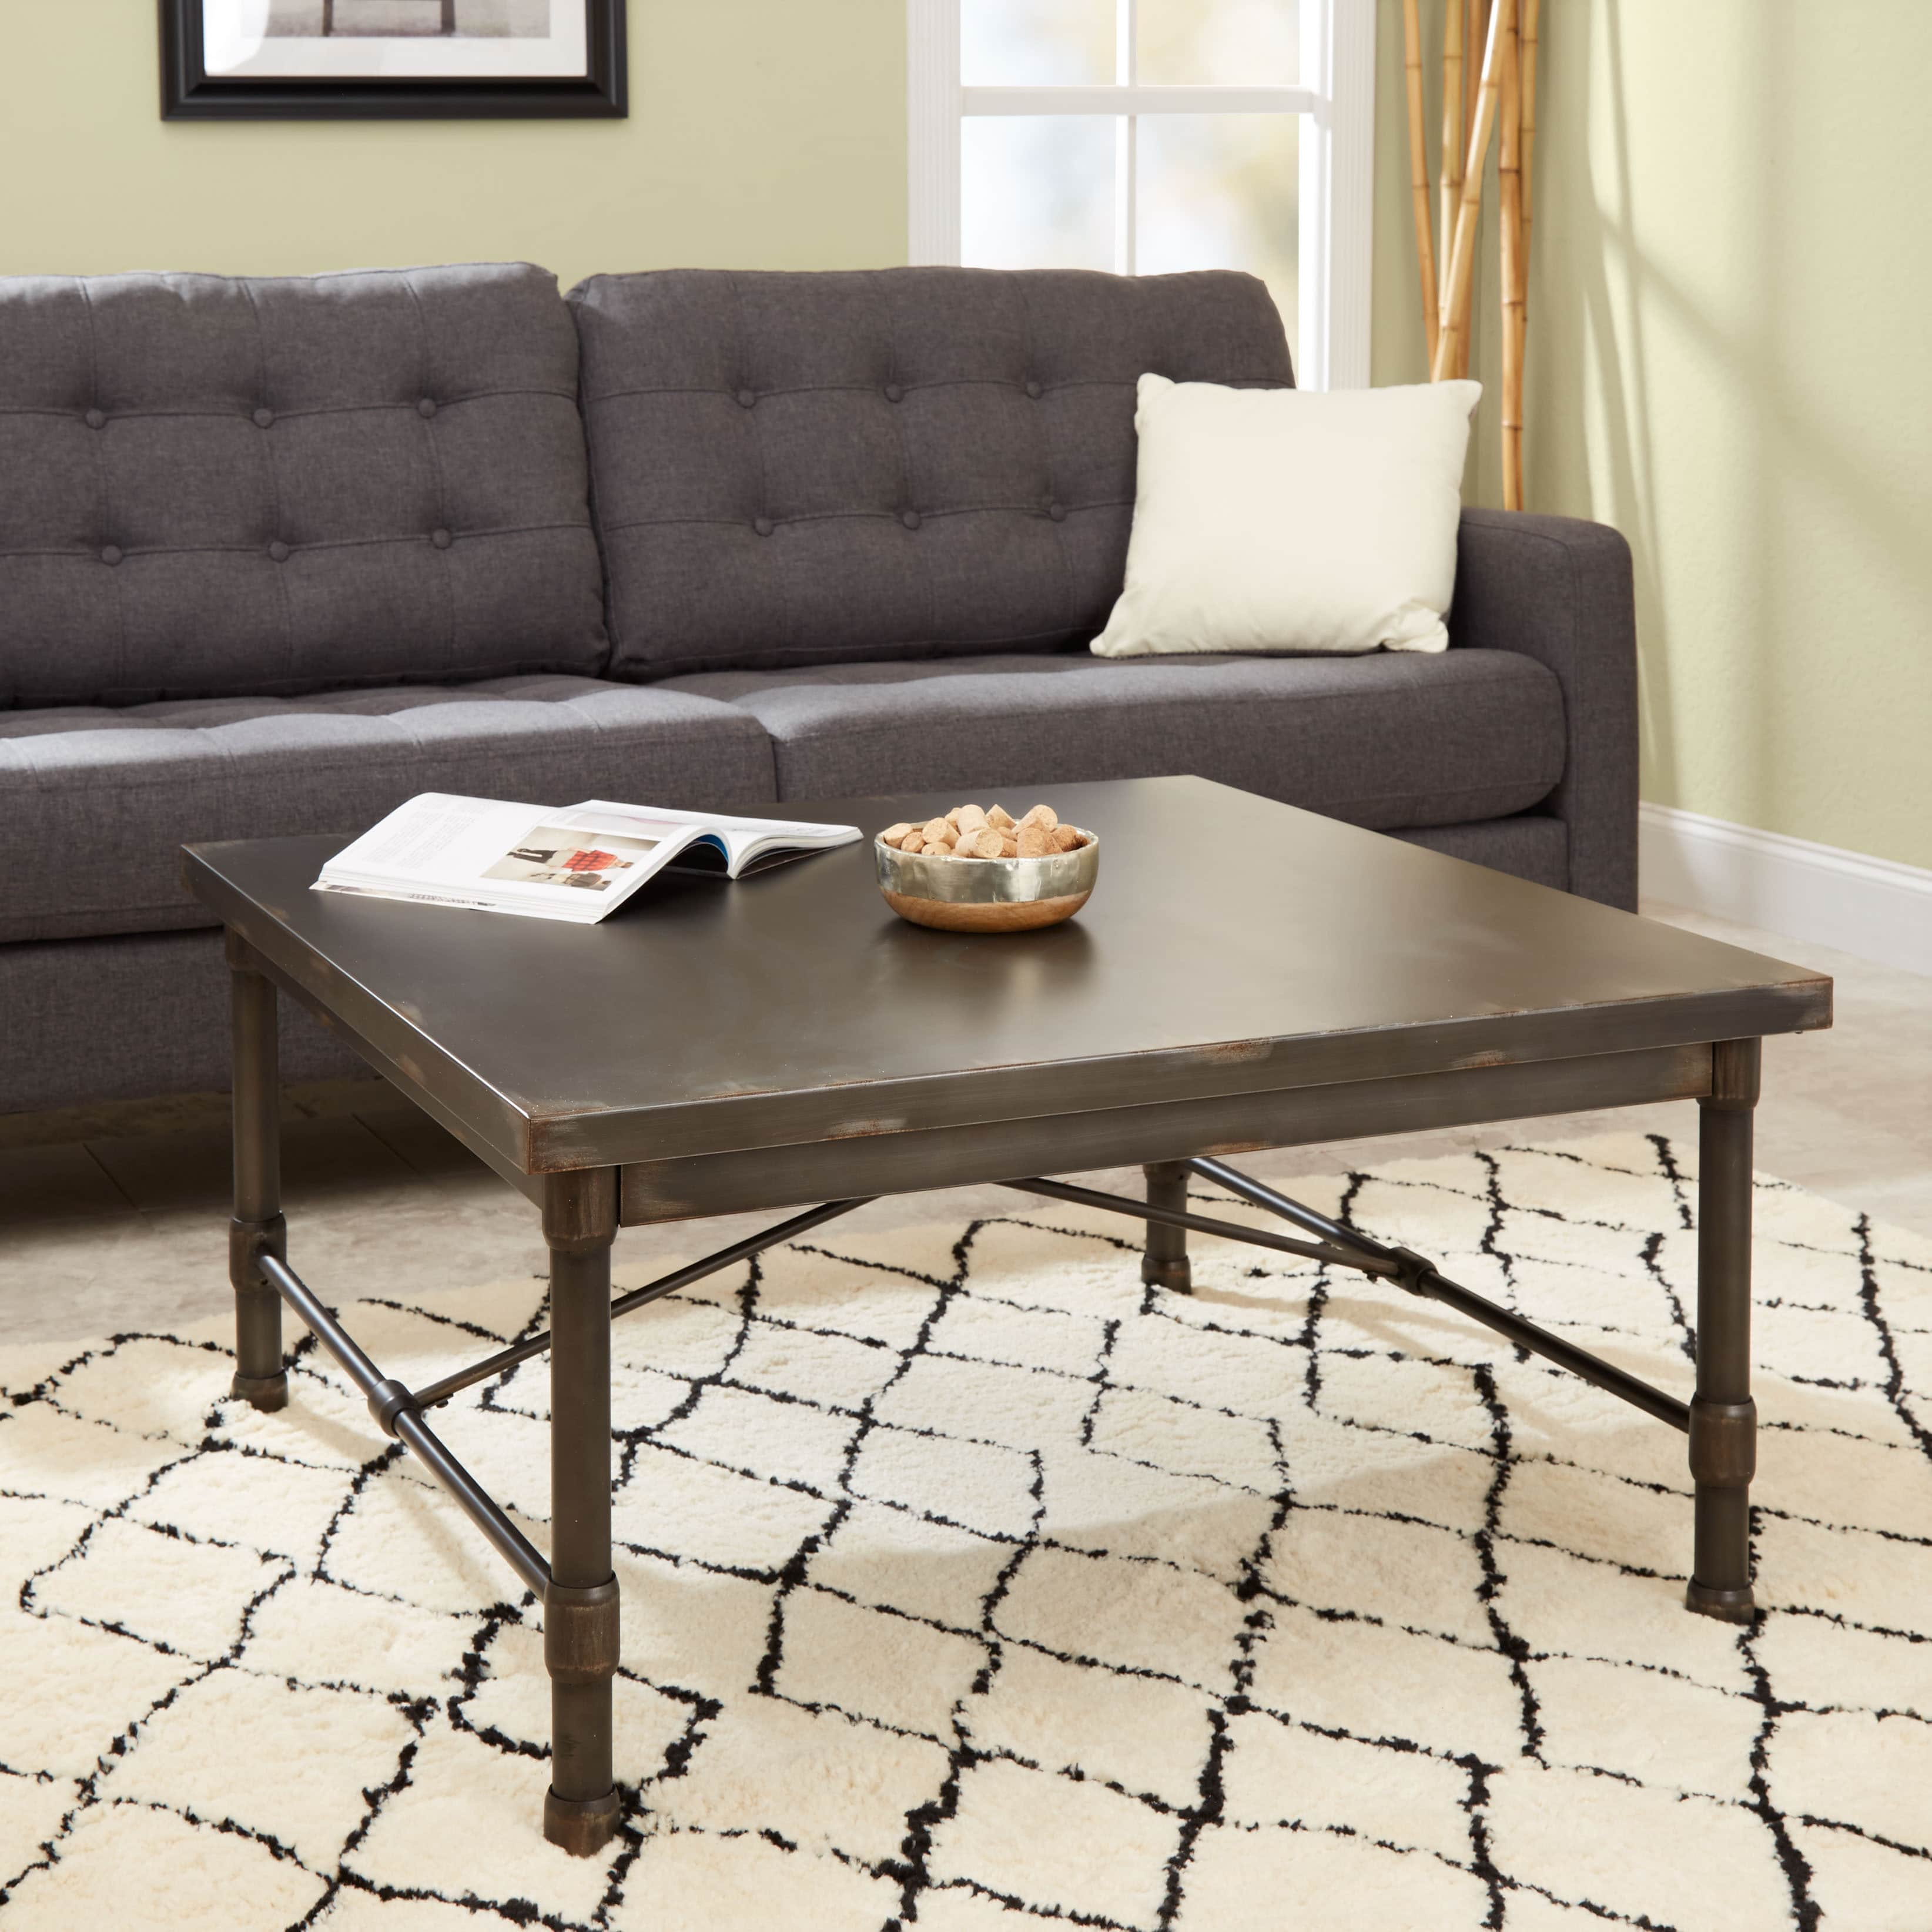 Silverwood Oxford Industrial Collection Square Coffee Table